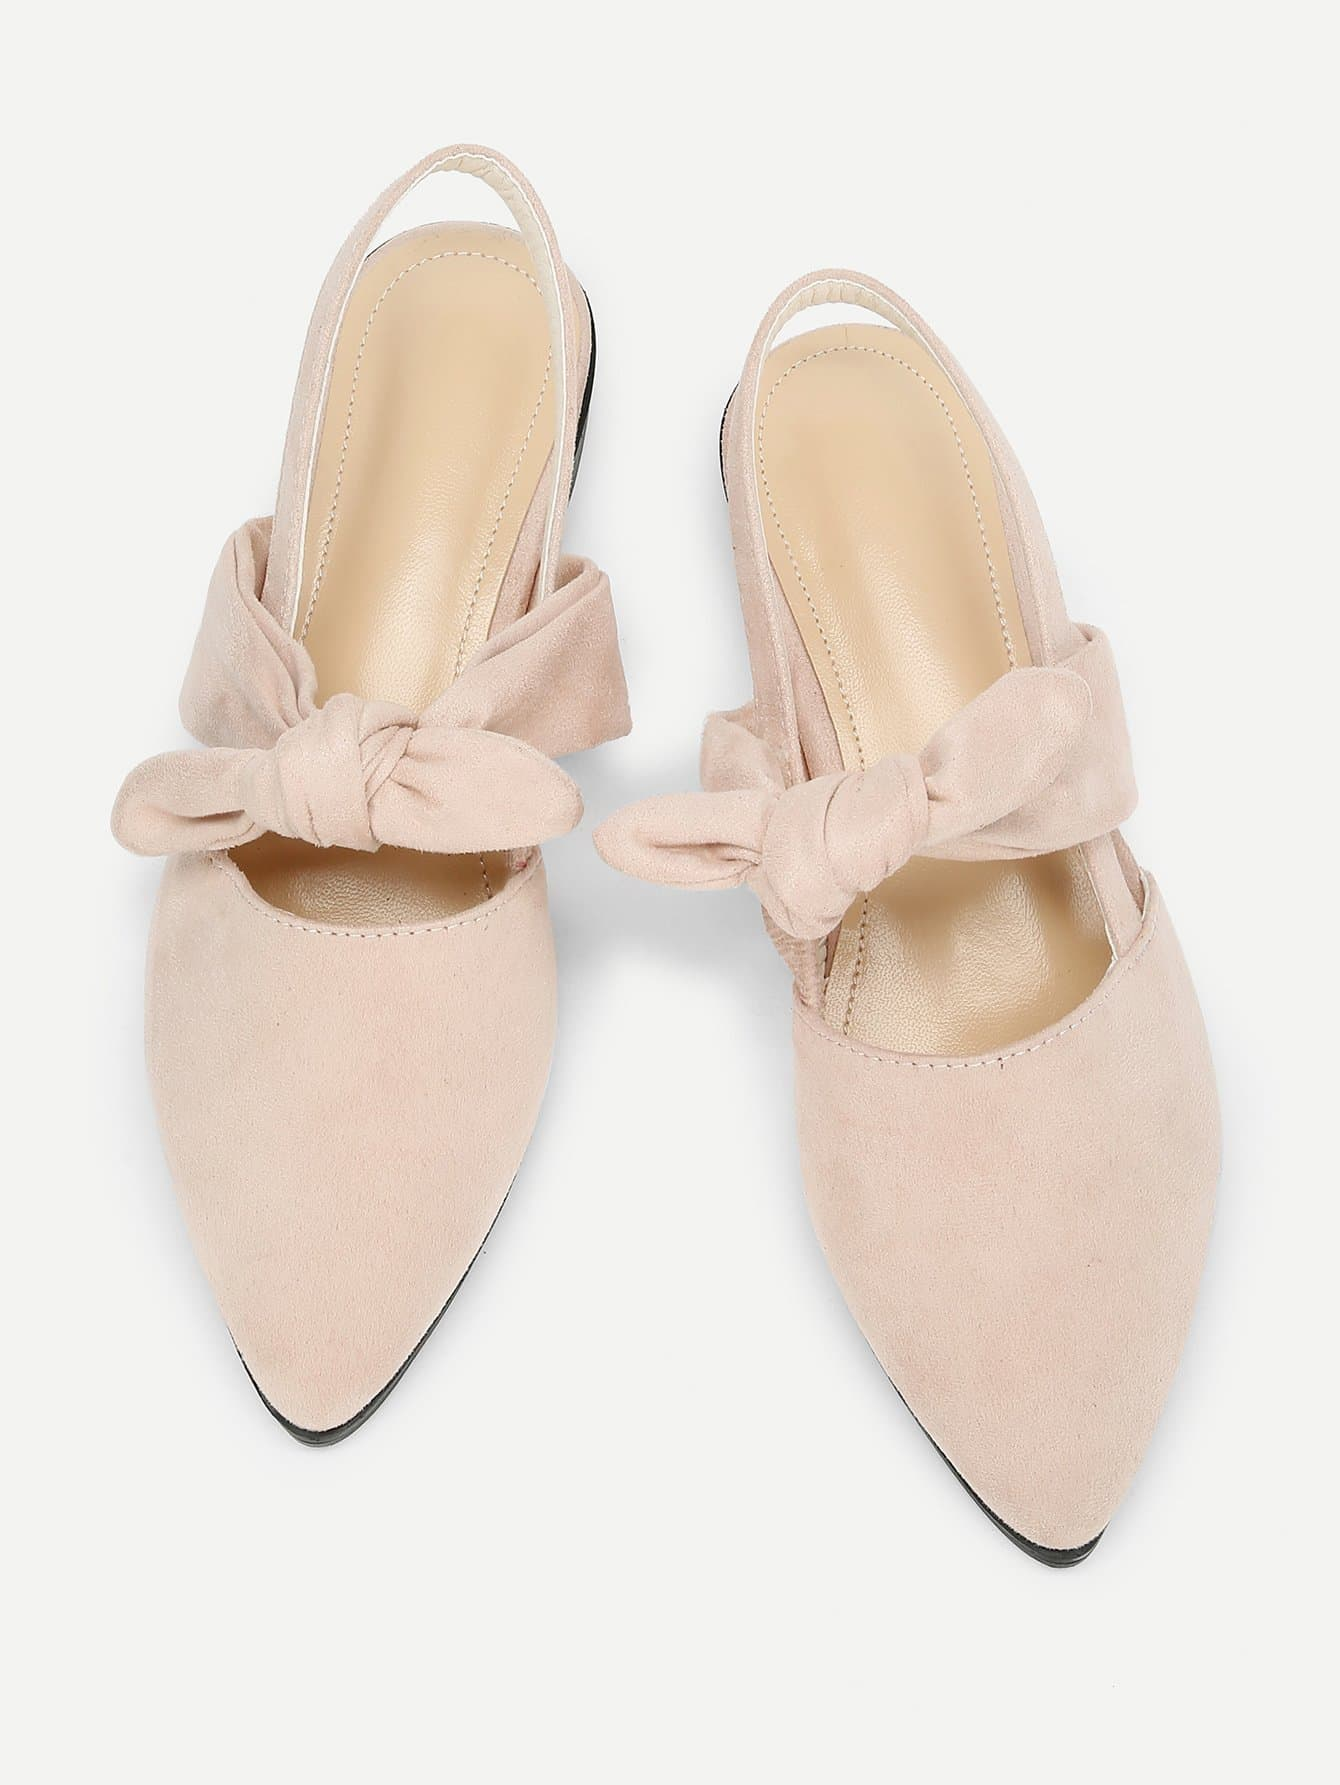 Knot Design Pointed Toe Suede Flats women ladies flats vintage pu leather loafers pointed toe silver metal design